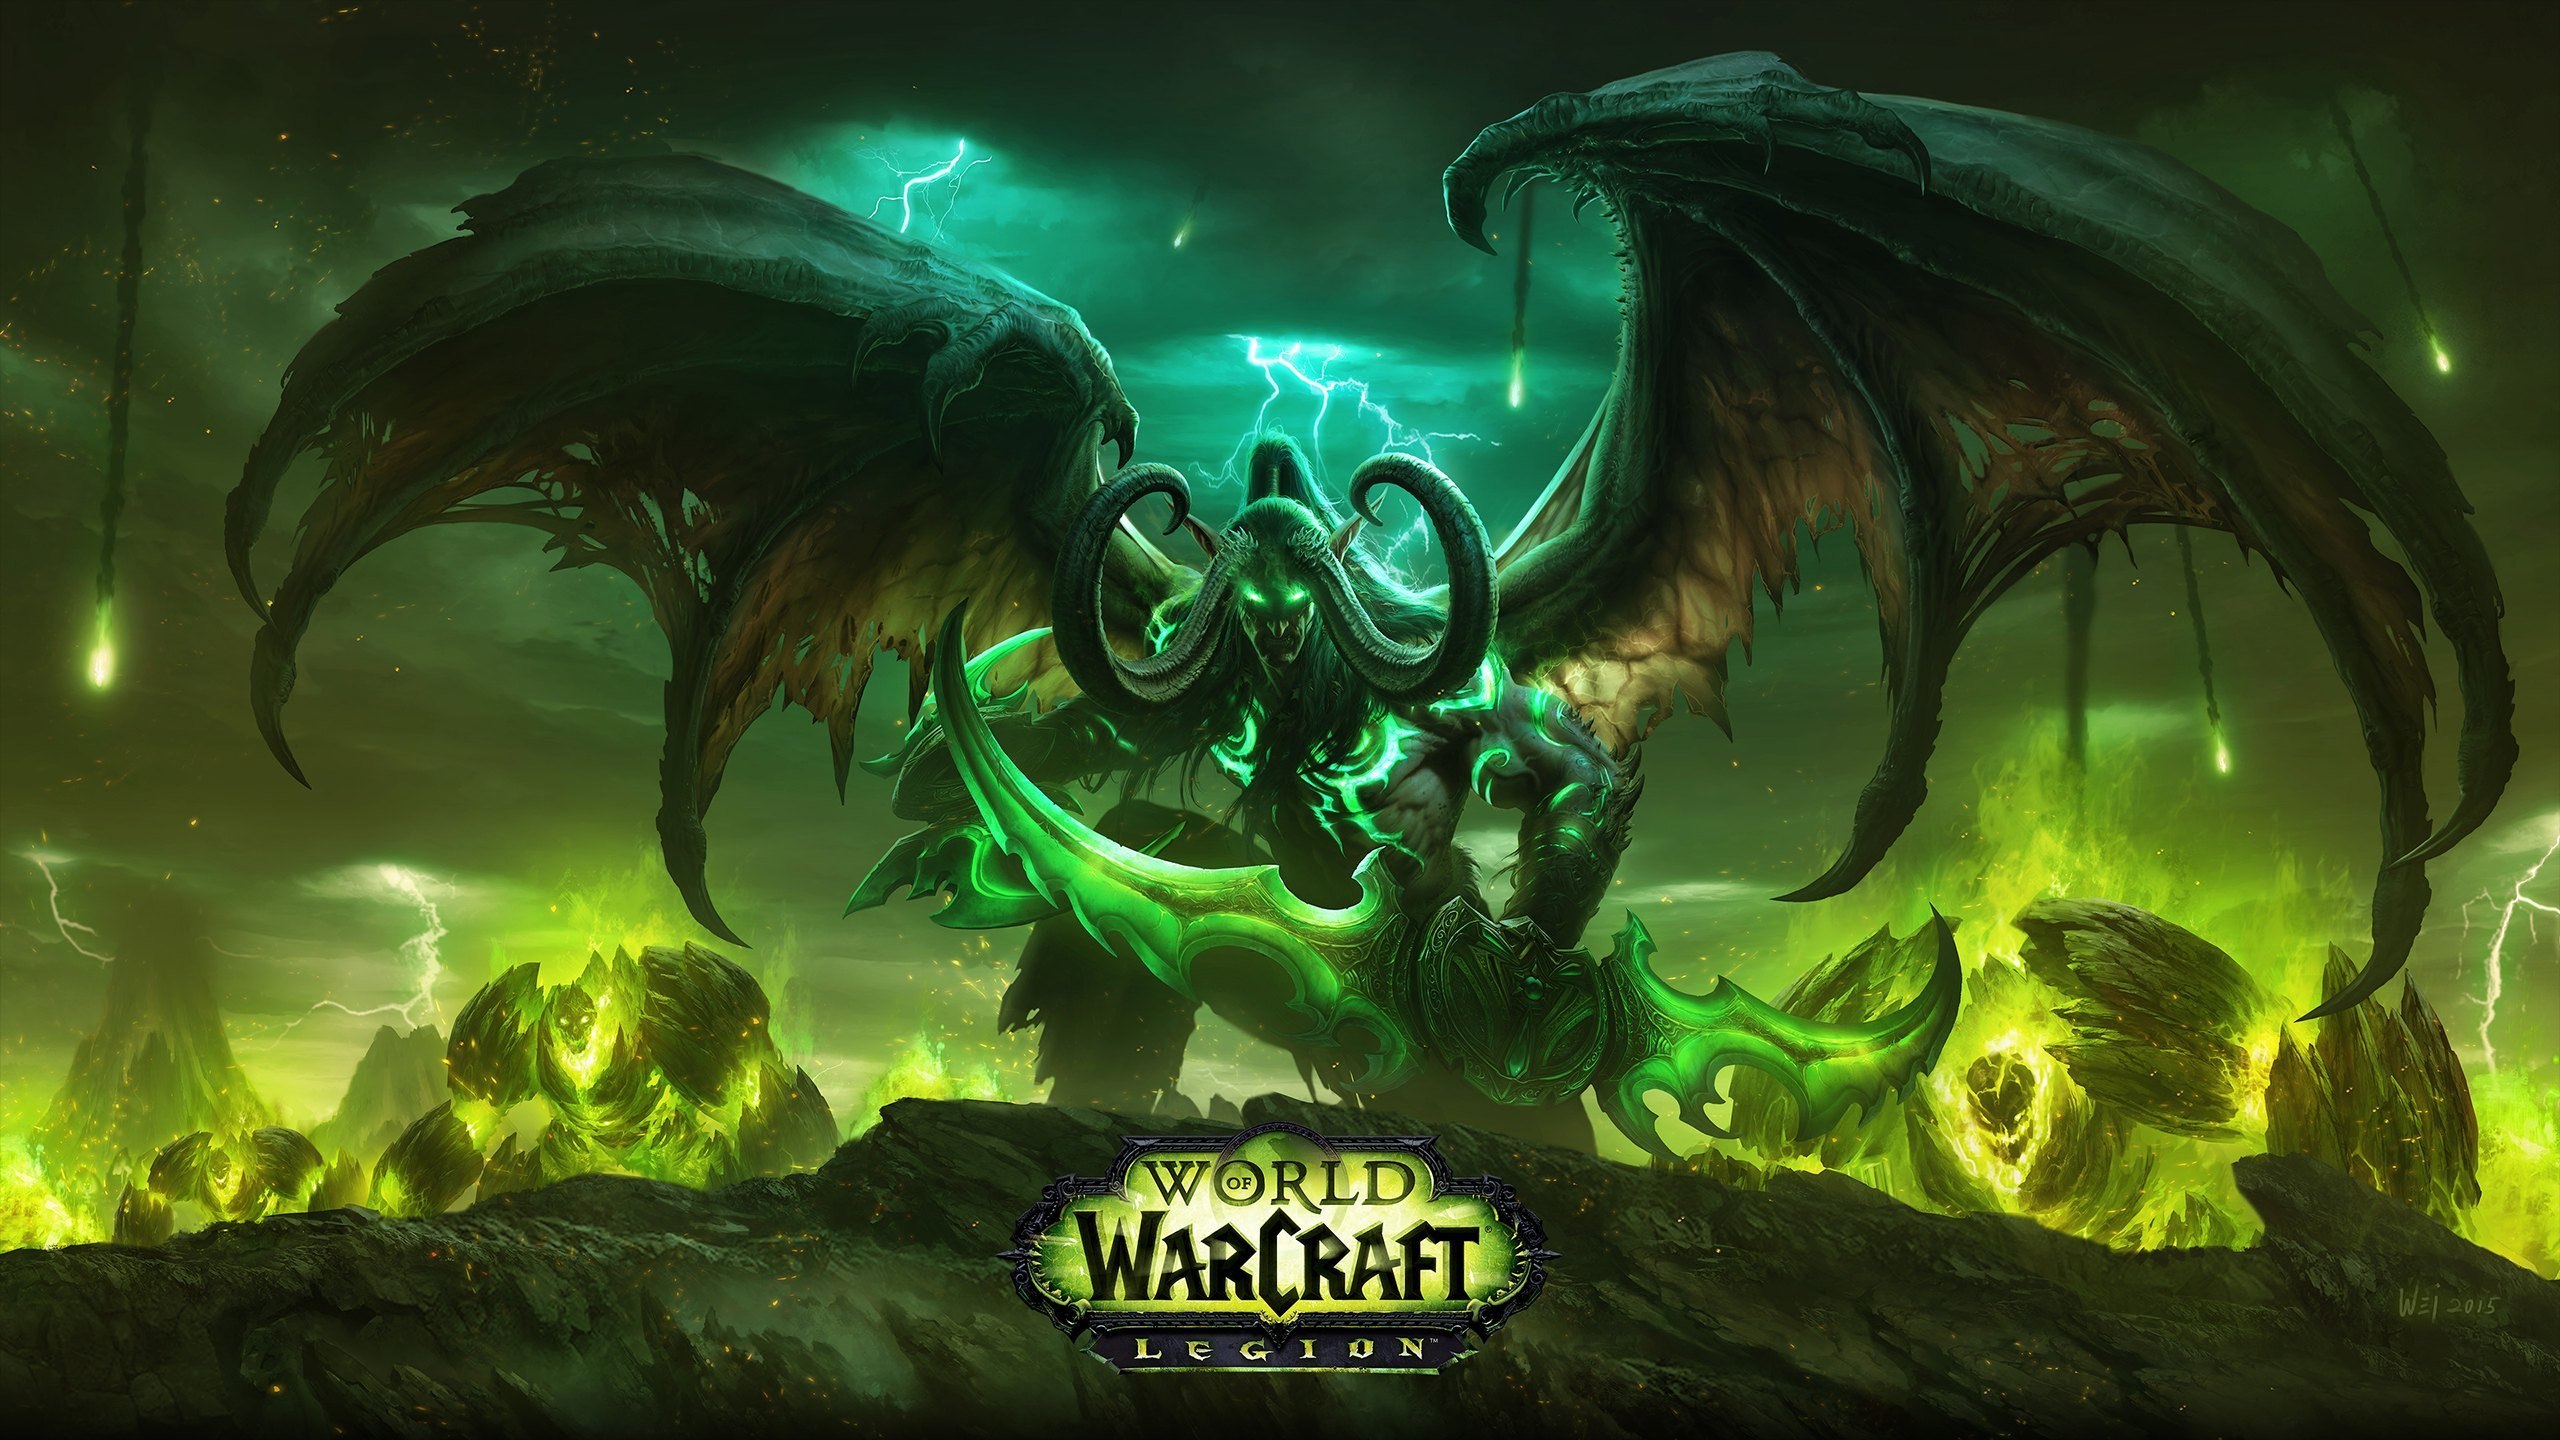 Free Download World Of Warcraft Legion Revealed Brings Demon Hunter Class Much 2560x1440 For Your Desktop Mobile Tablet Explore 49 Demon Hunter Wow Wallpaper Wow Demon Hunter Wallpaper Demon